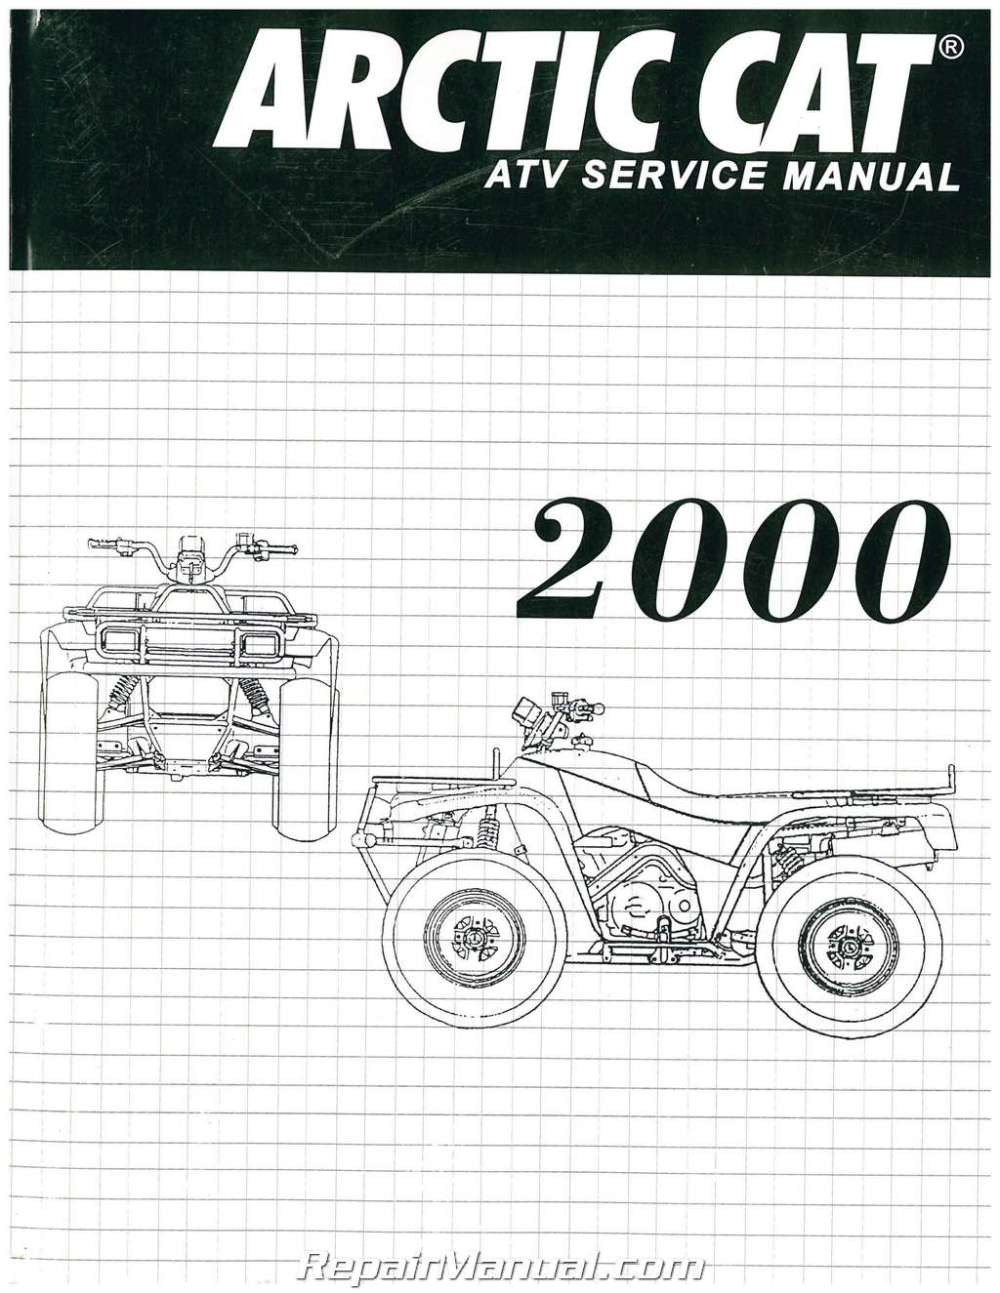 medium resolution of wiring diagram 1998 arctic cat 500 atv wiring resources rh ukgm org arctic cat 250 wiring diagram arctic cat 300 wiring diagram